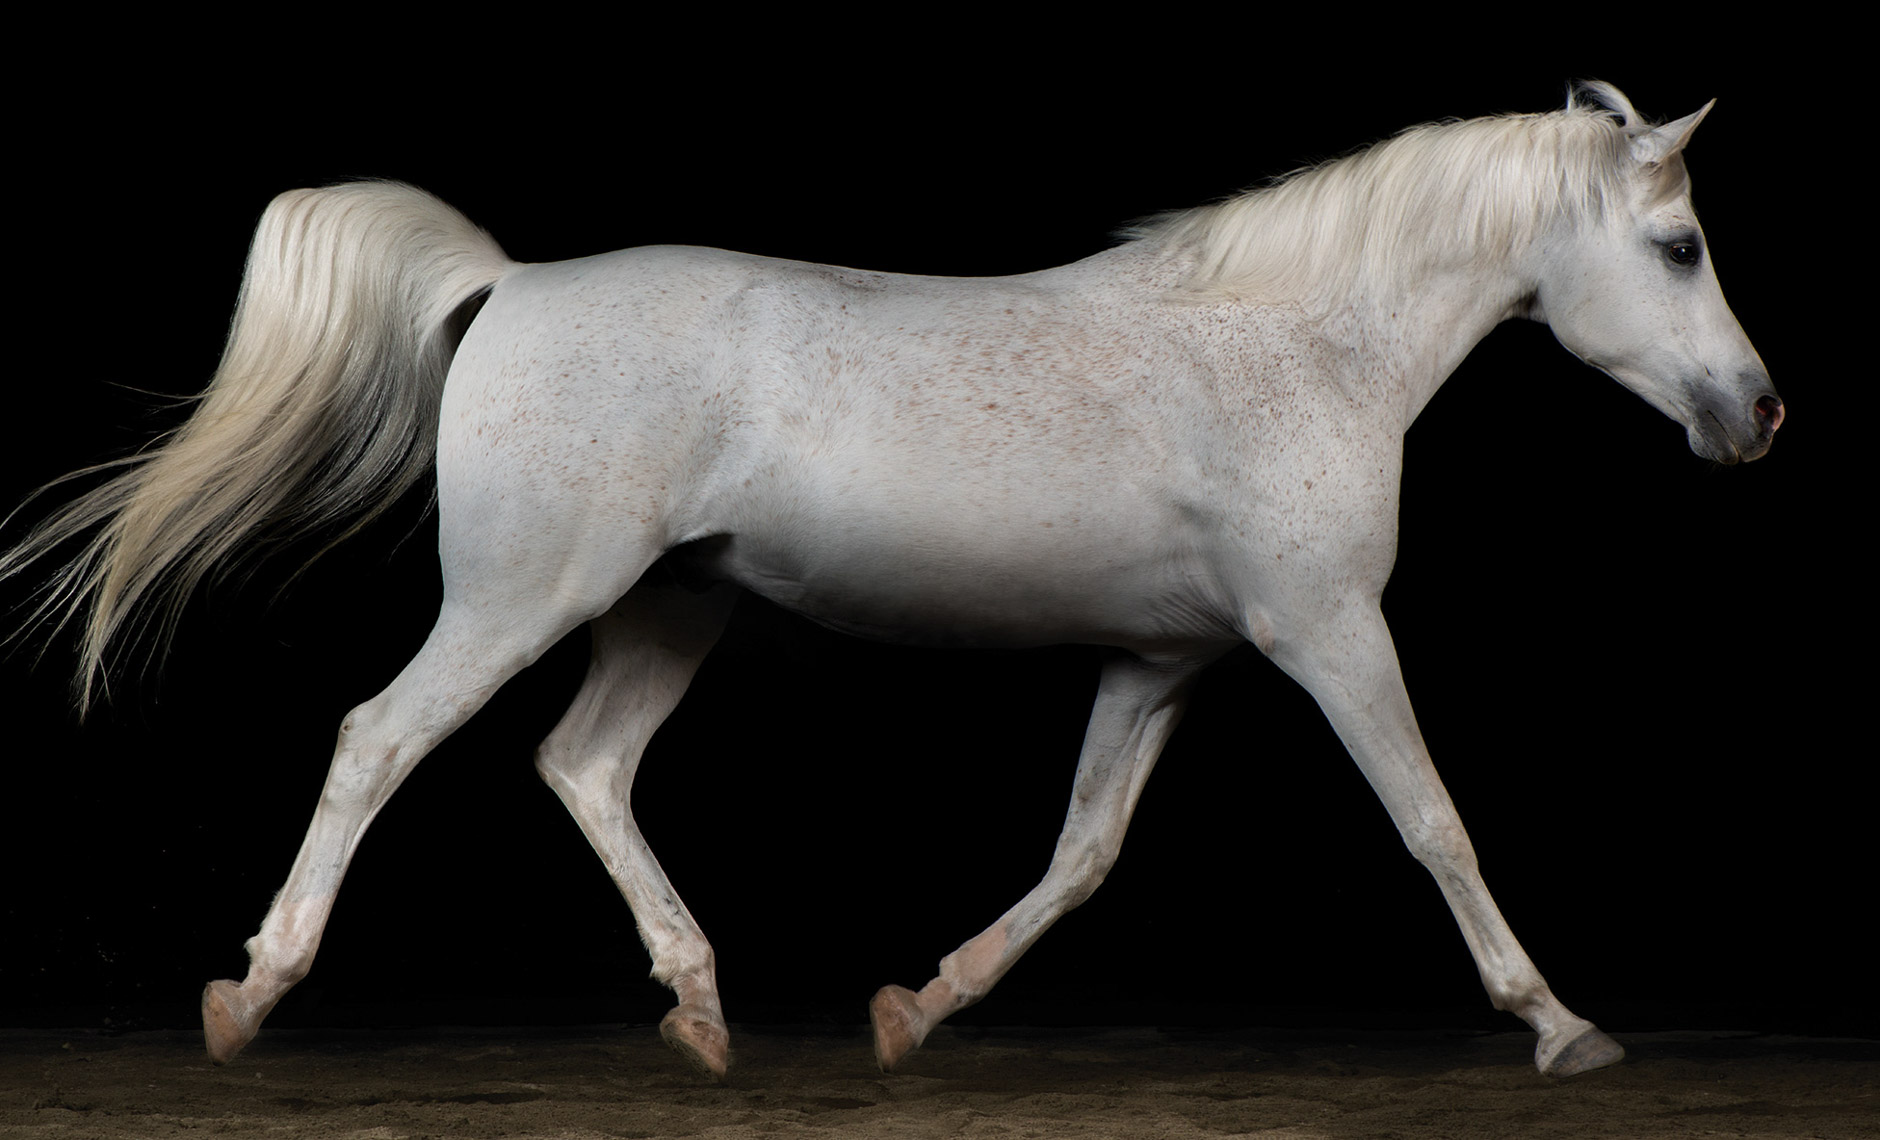 horse.equine.arabian.stride.photo.peter.samuels.2